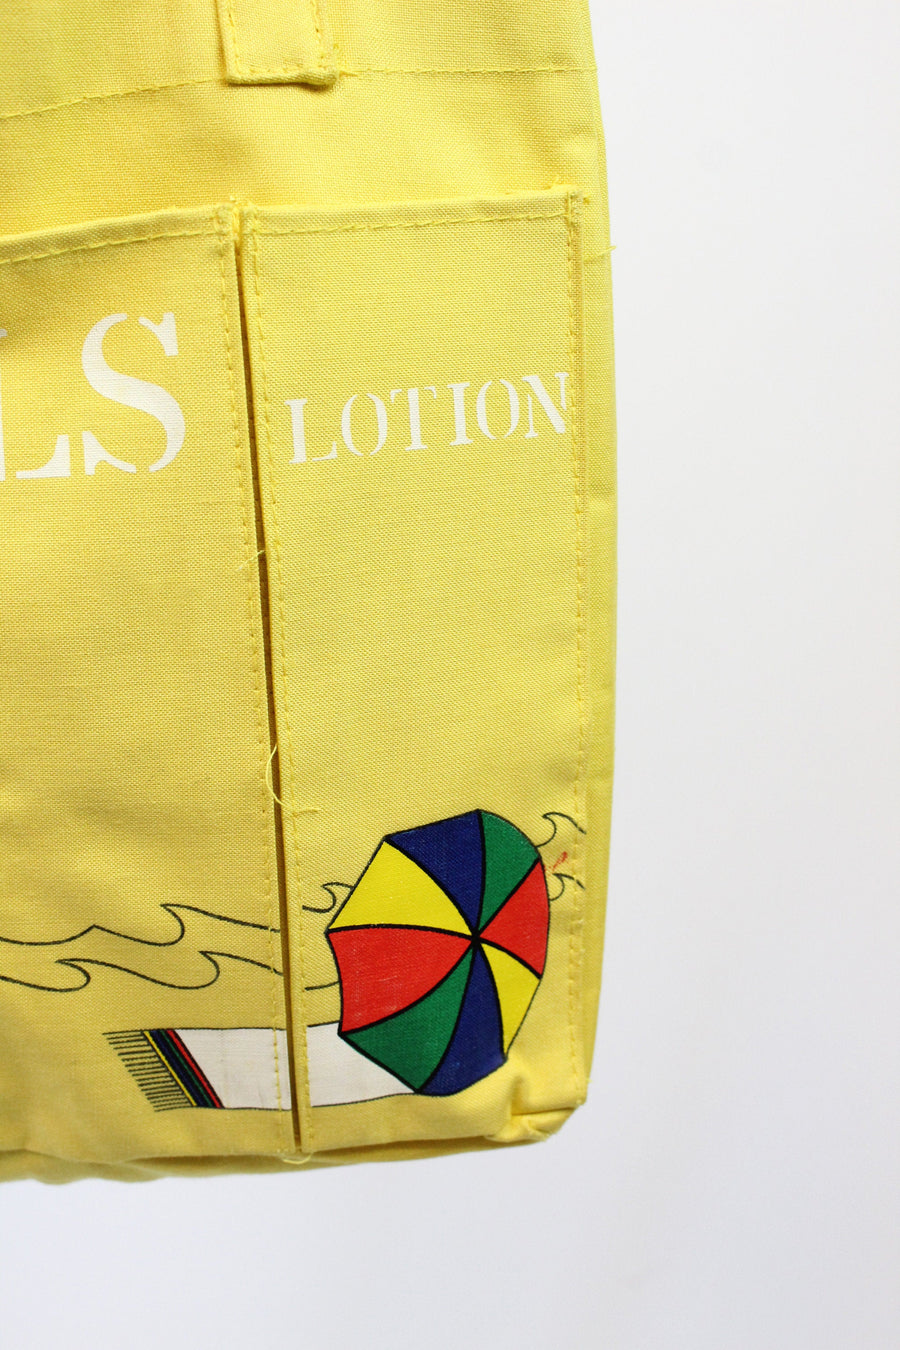 1960s beach tote handbag | vintage novelty print bag towels lotion